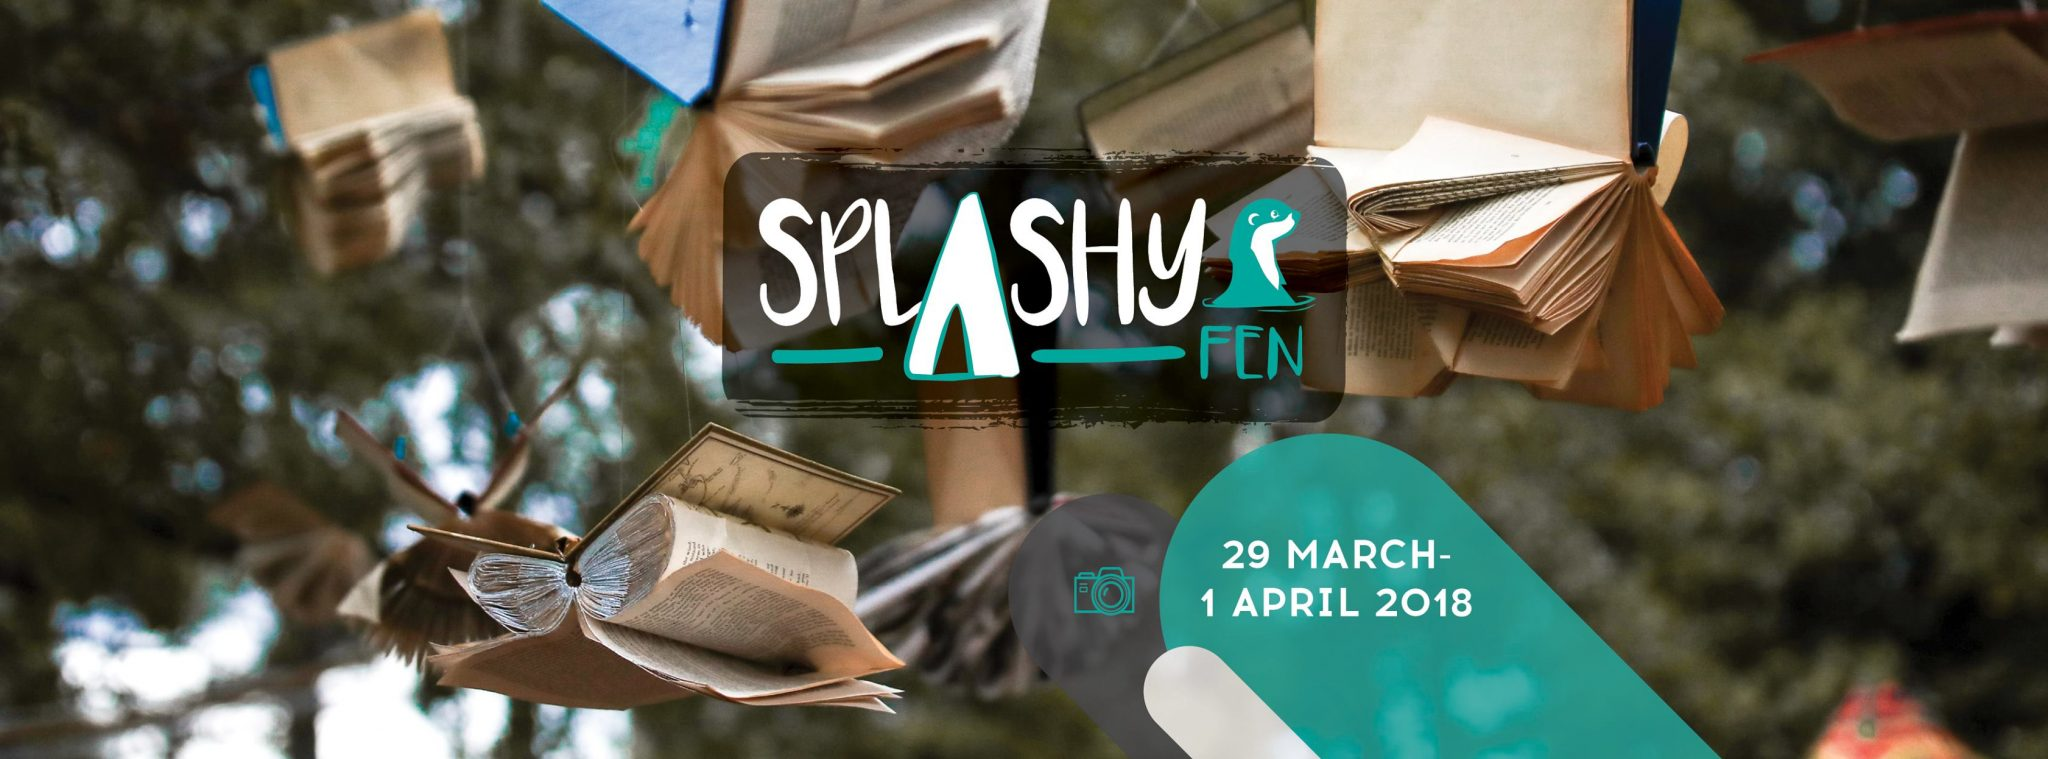 Splashy Fen 2018